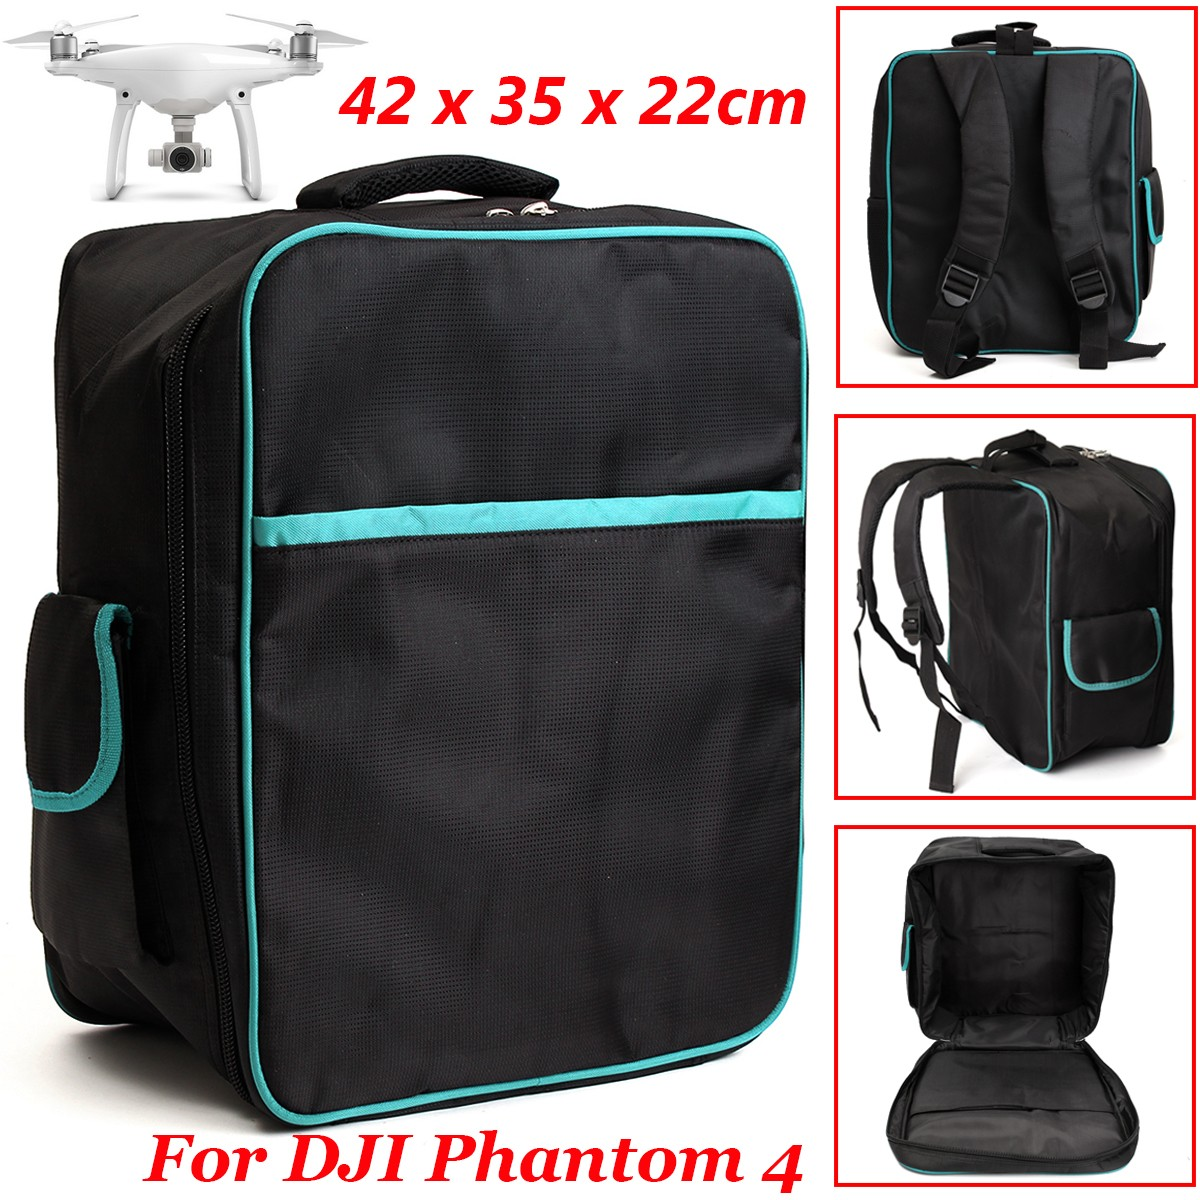 New Backpack Shoulder Bag Carrying Case for DJI Phantom 4 Phantom 3 Quadcopter Drone Bags Waterproof Snow Cloth Fabric босоножки chic nana chic nana ch039awtll82